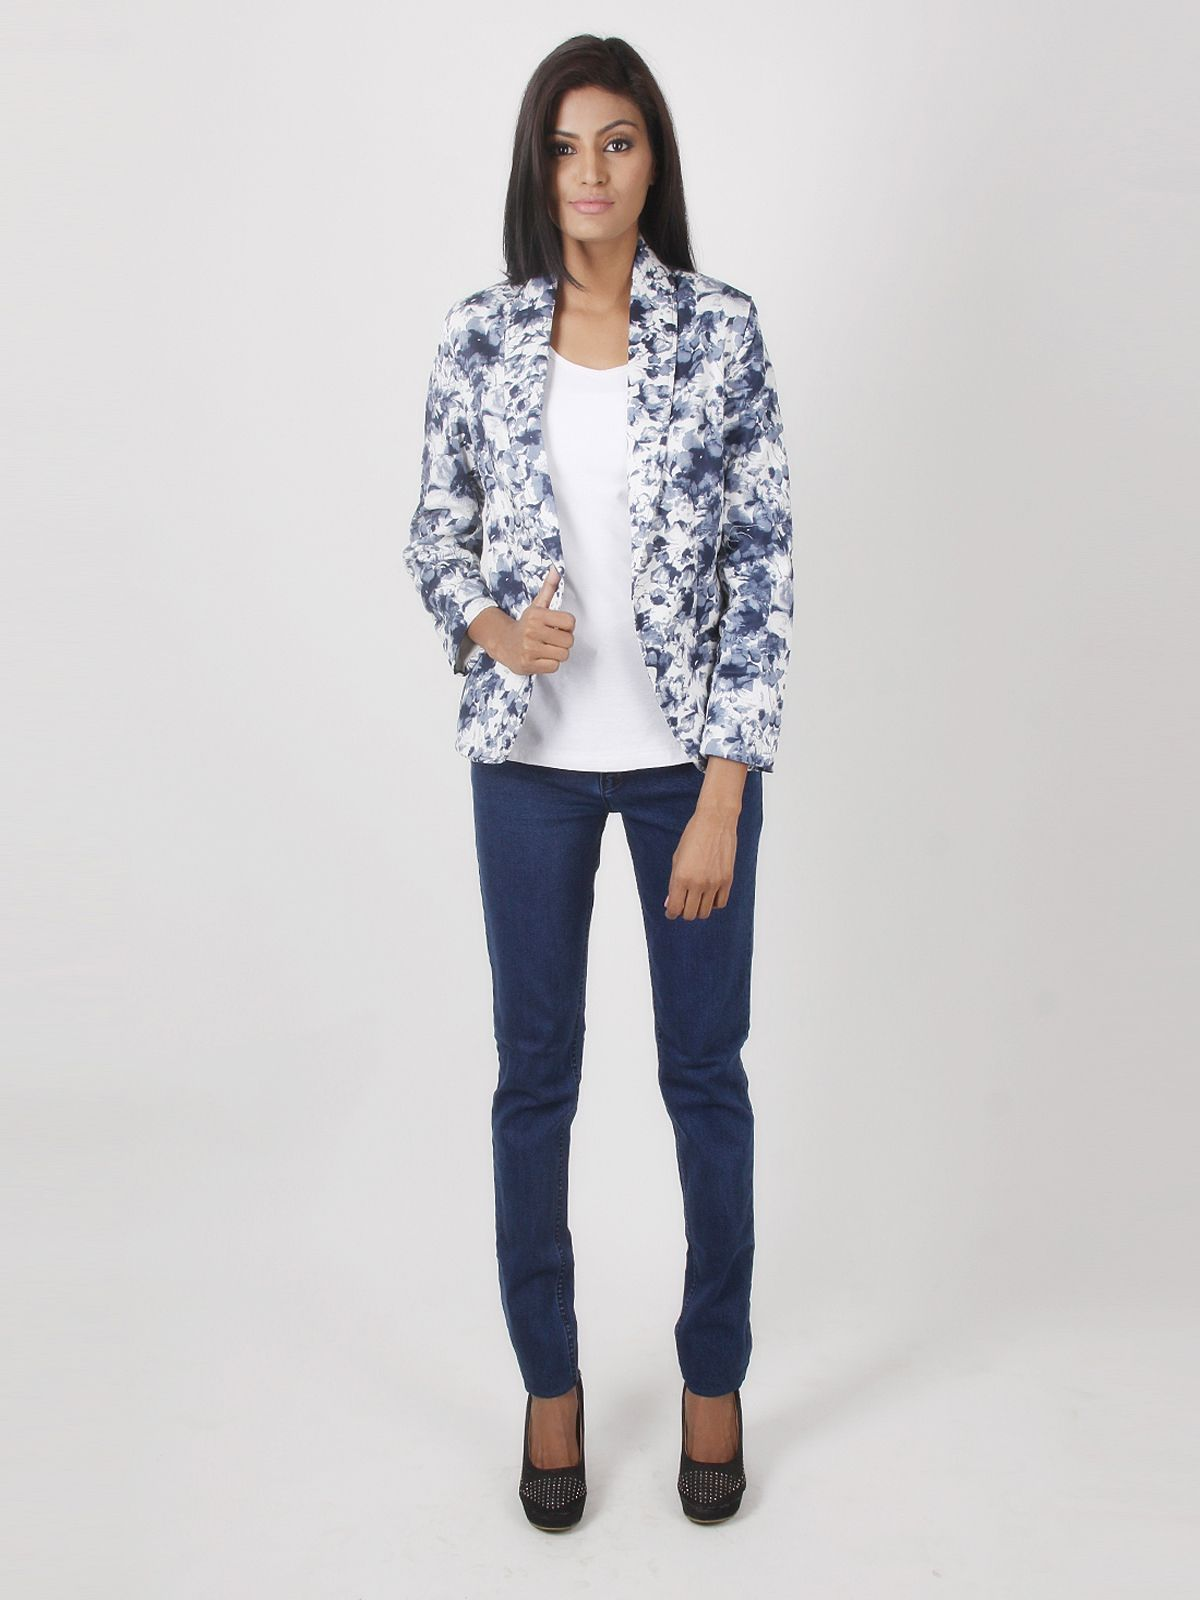 Womens Fashion Clothing: Casual Jackets For Women - Google Search